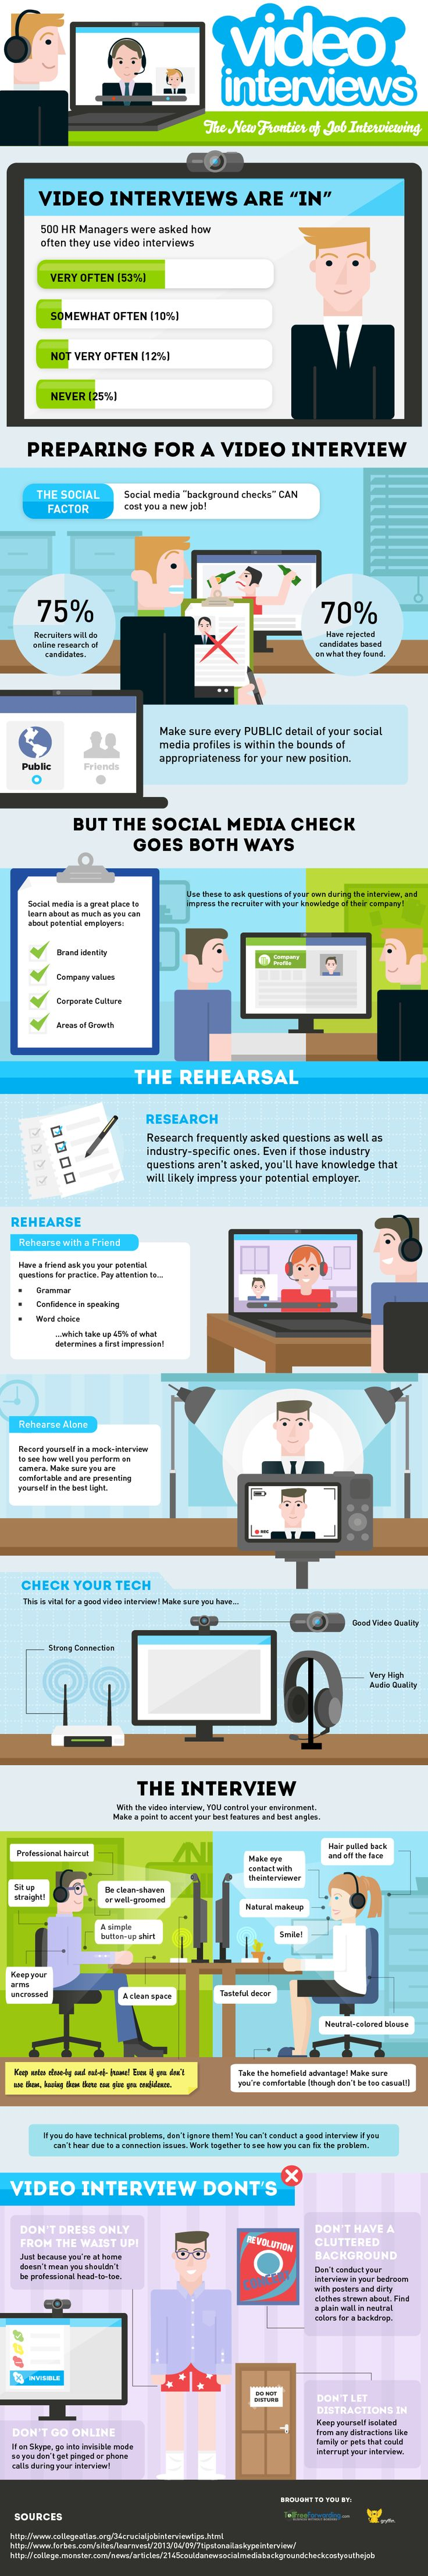 Infographic: Video Interviews: The New Frontier of Job Interviewing #infographic